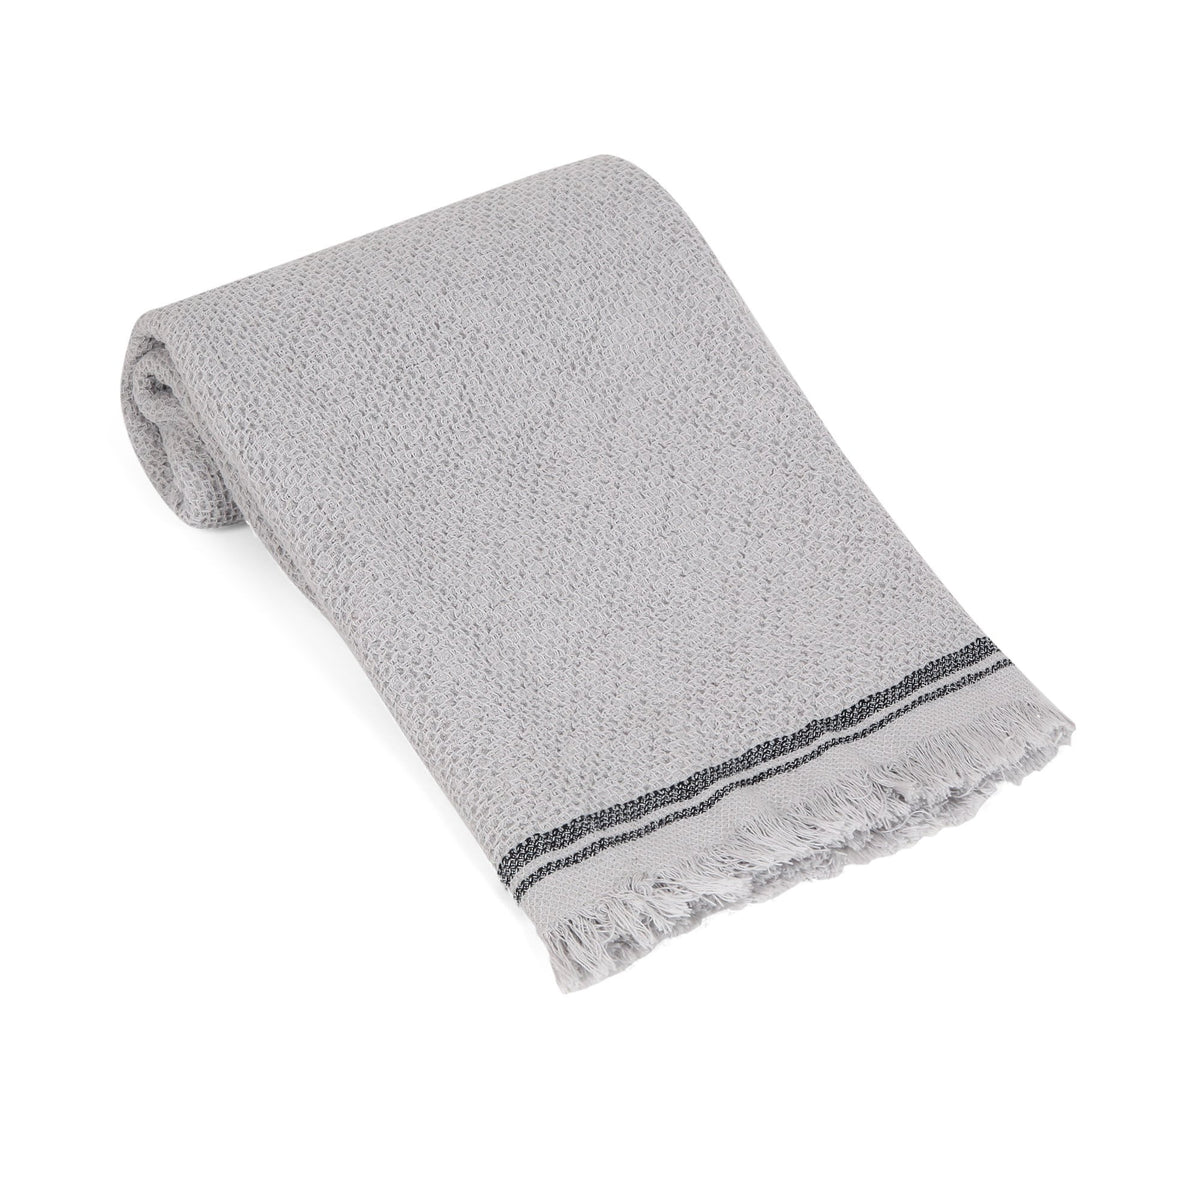 Lush Loom Turkish Bath Towel